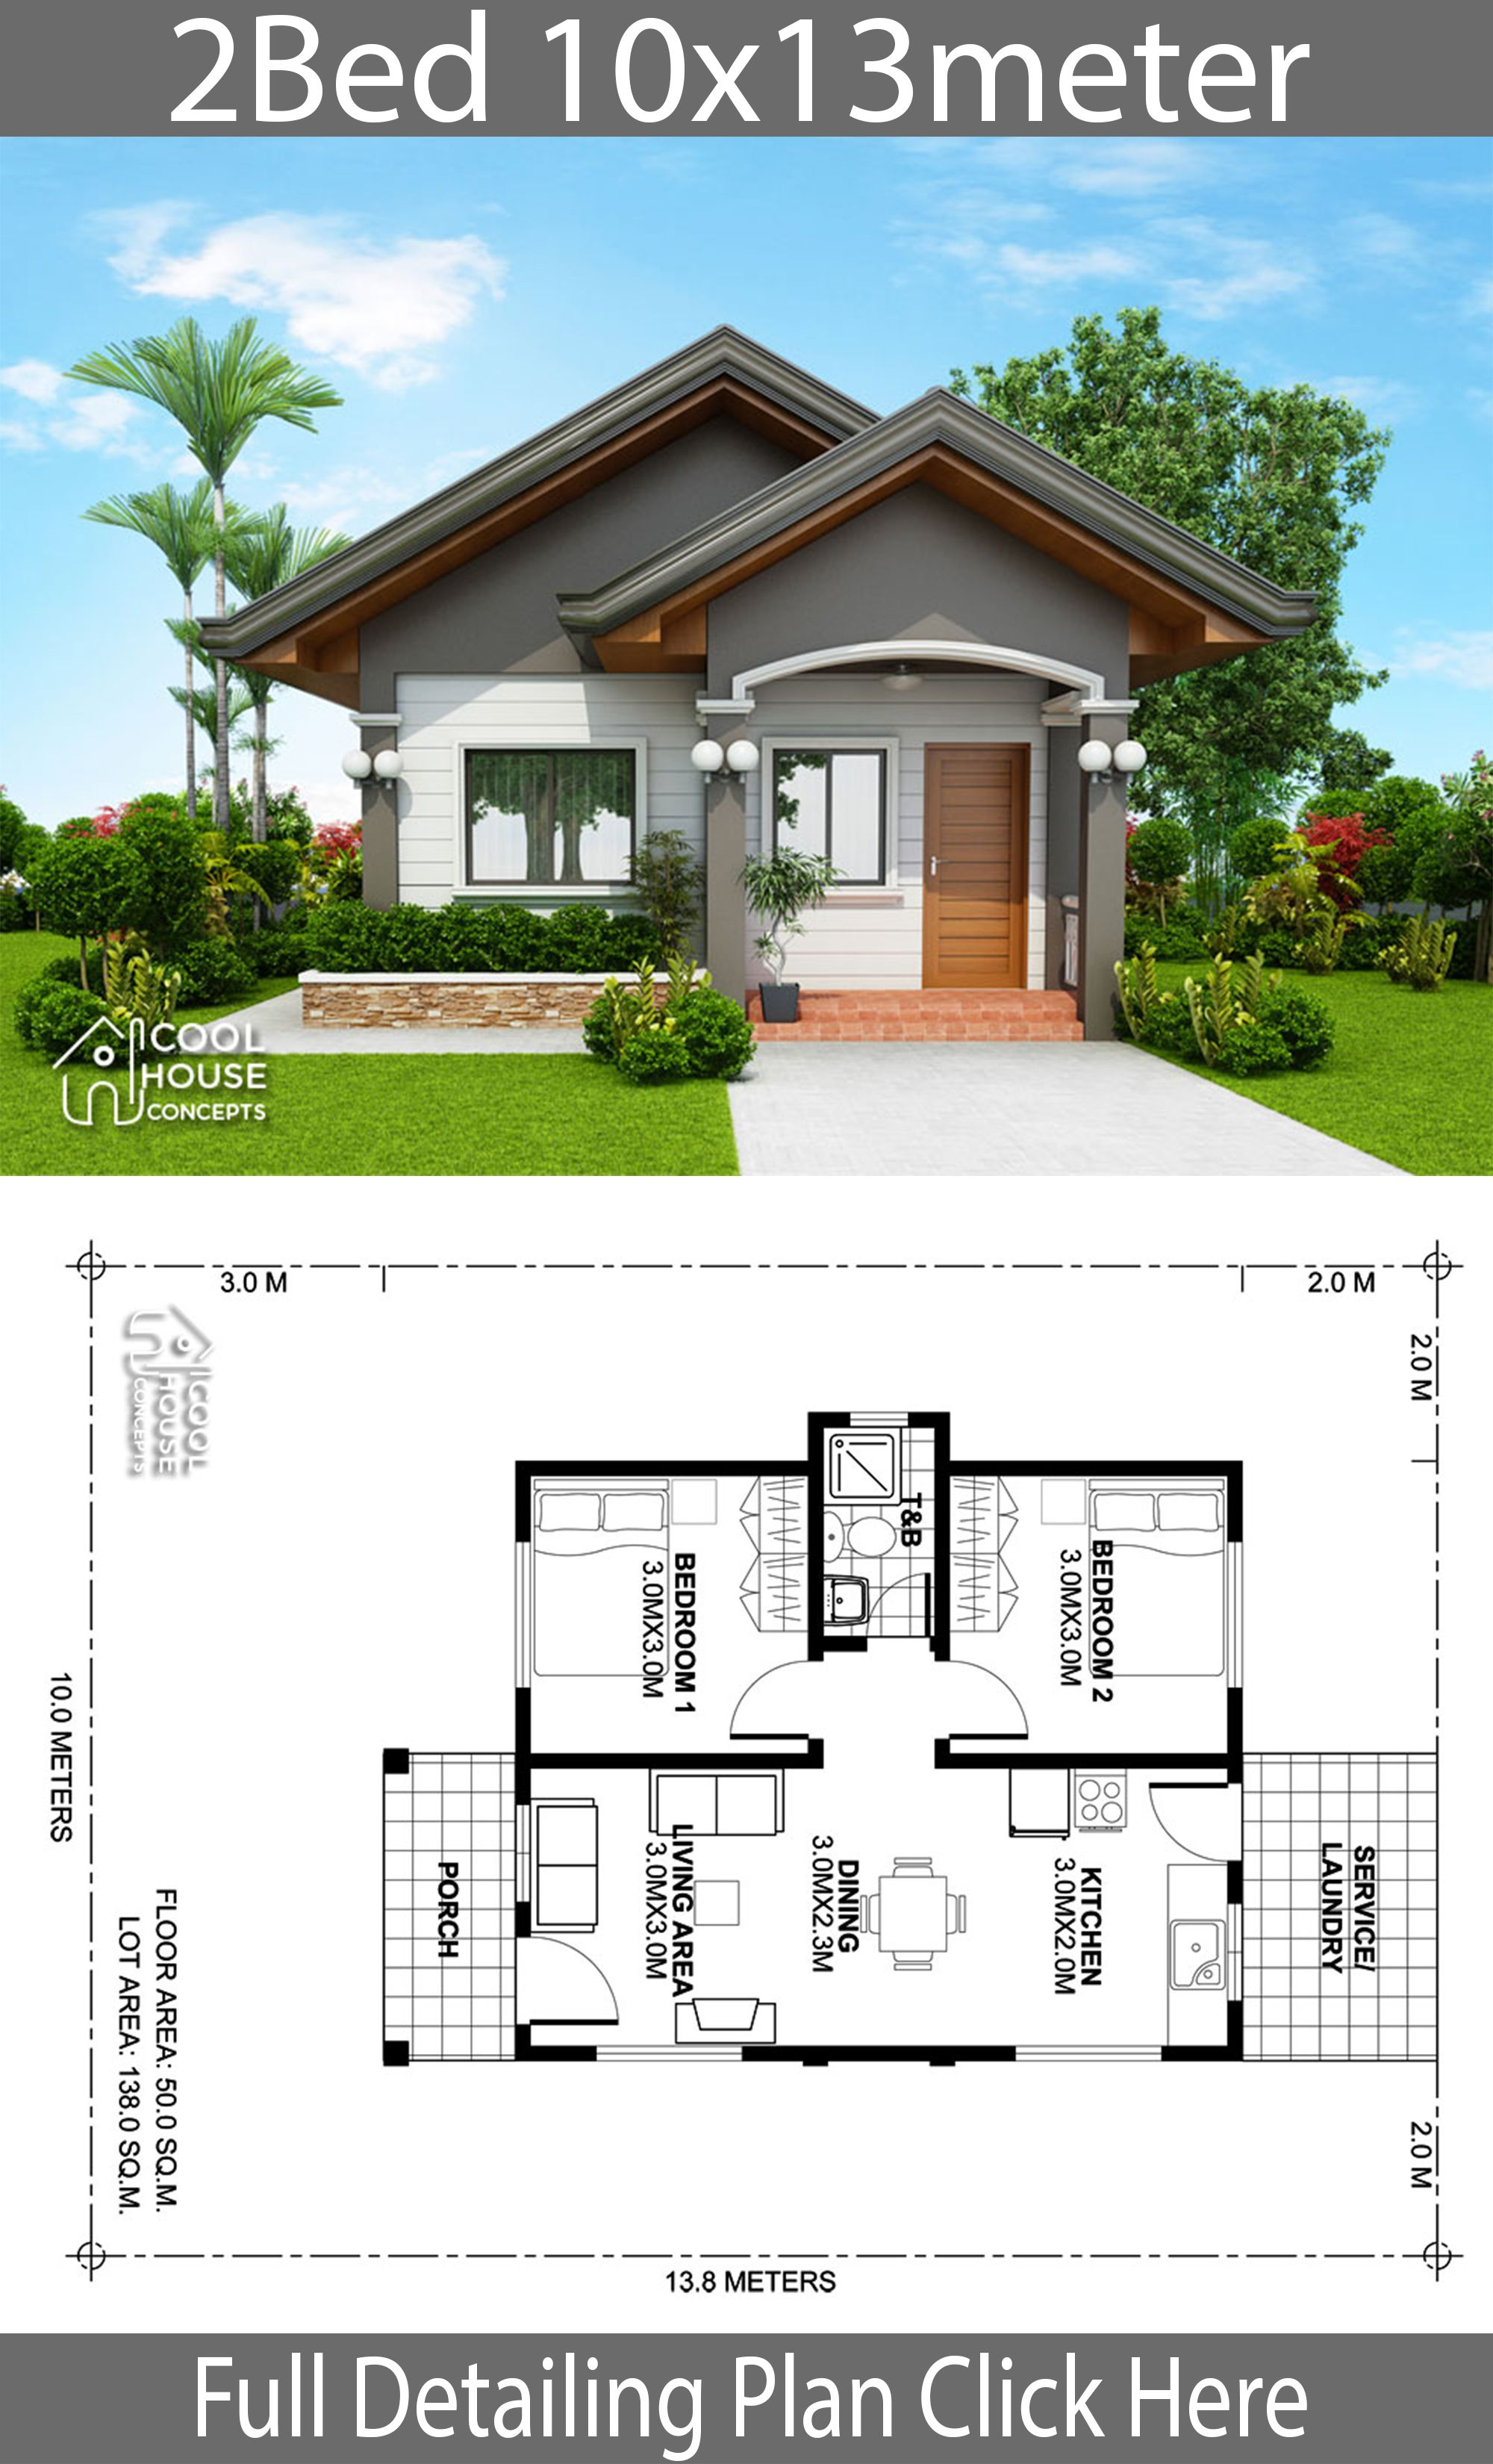 Pin By Mohammed Ali On Samphoas House Plan Simple House Design Modern House Plans Small House Design